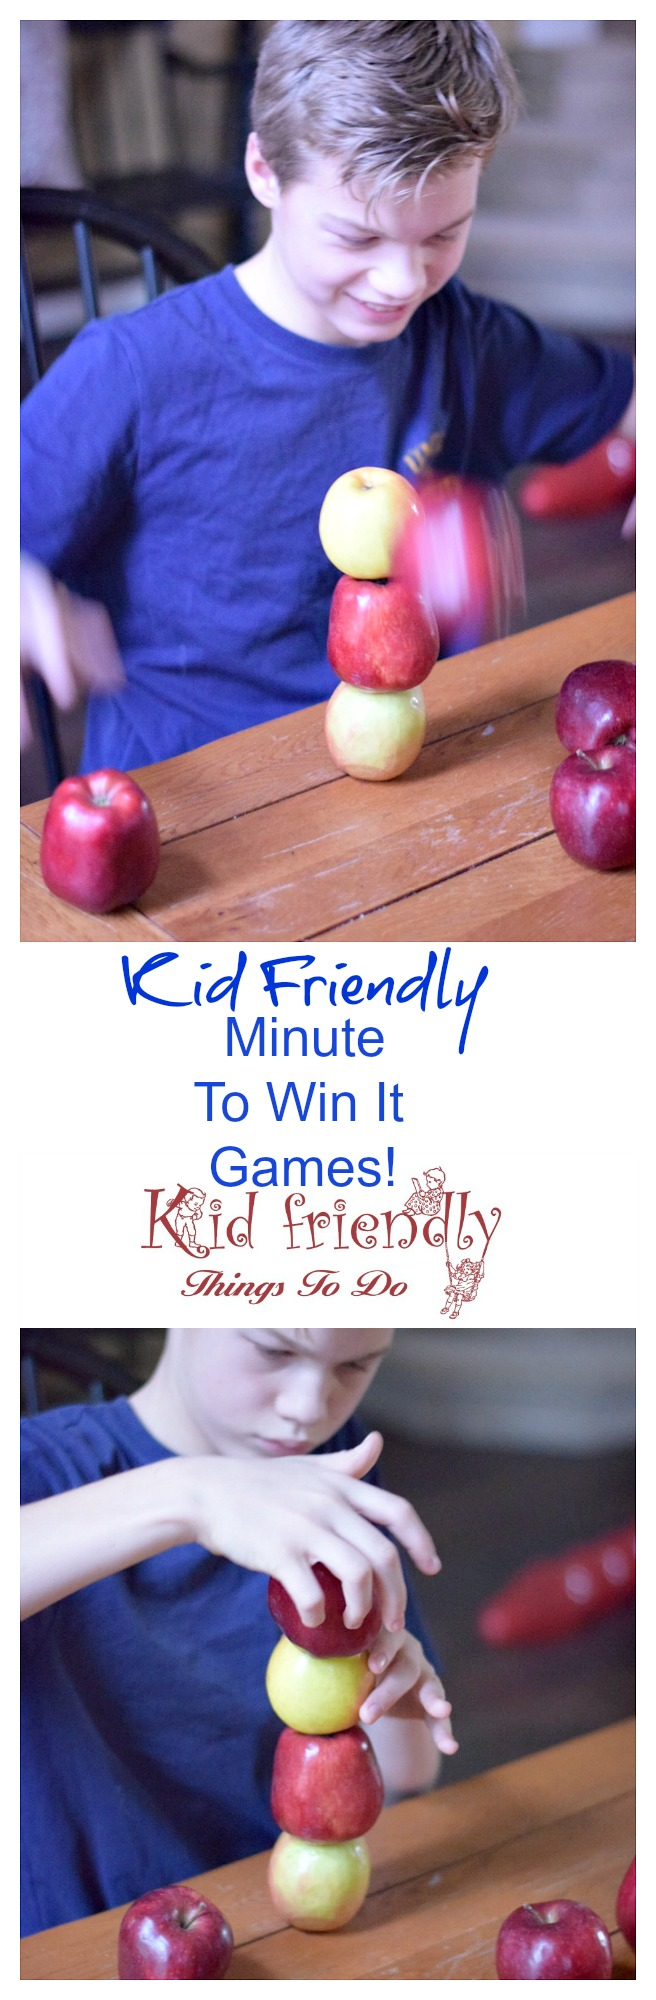 Even More Fun Kid Friendly Minute To Win it Games! Fun for the whole family! Great for parties - like Christmas, New Years, Teenage, Classroom and more! www.kidfriendlythingstodo.com